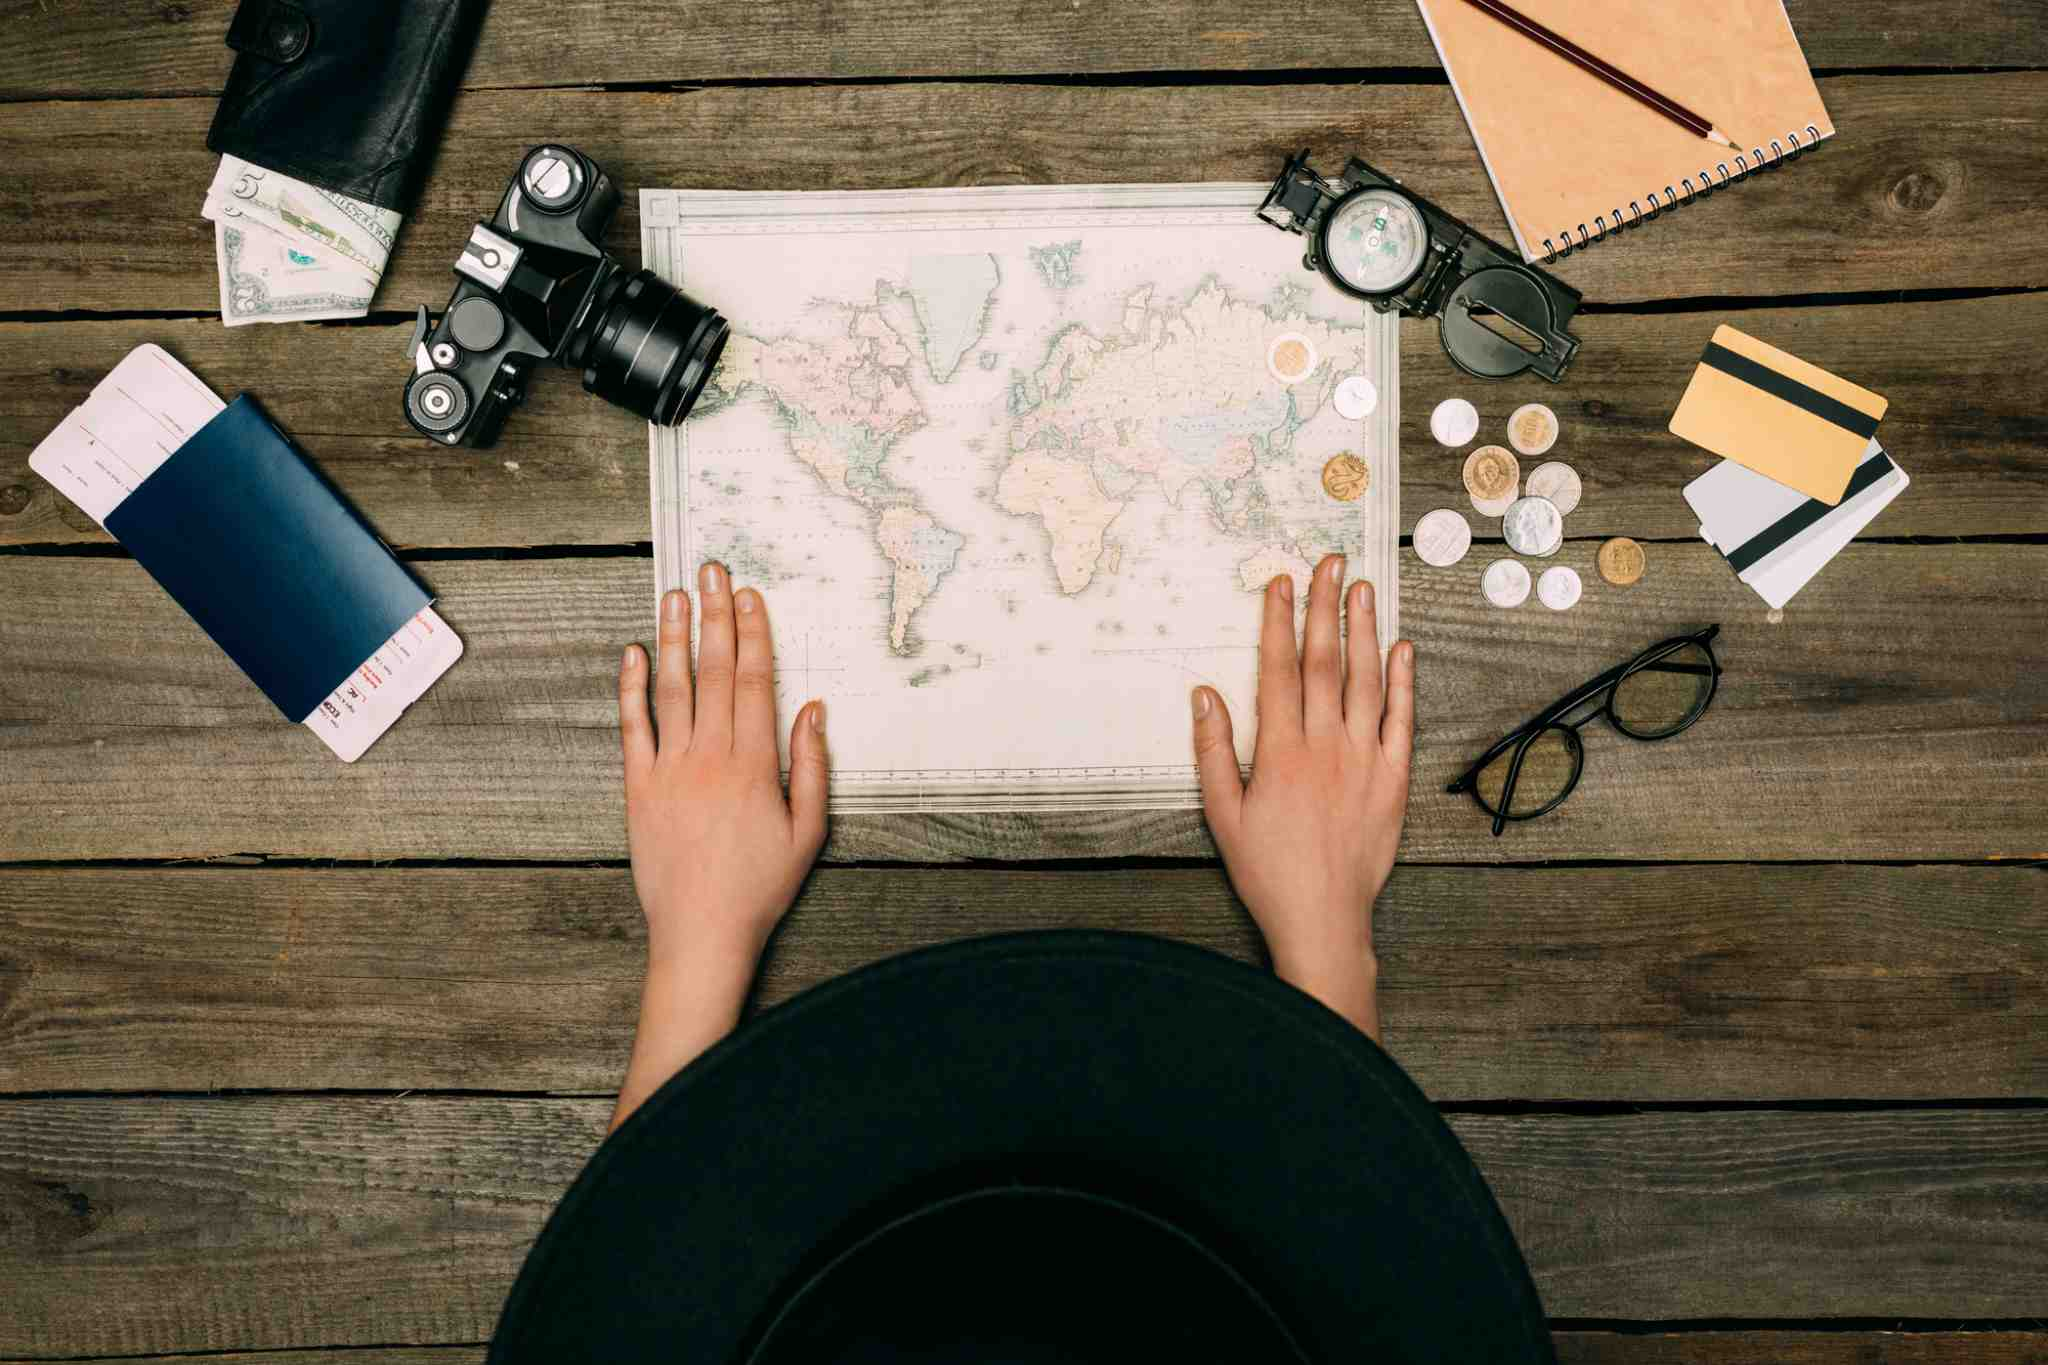 A bird's eye view of a woman looking at a map, a camera and some leftover currency